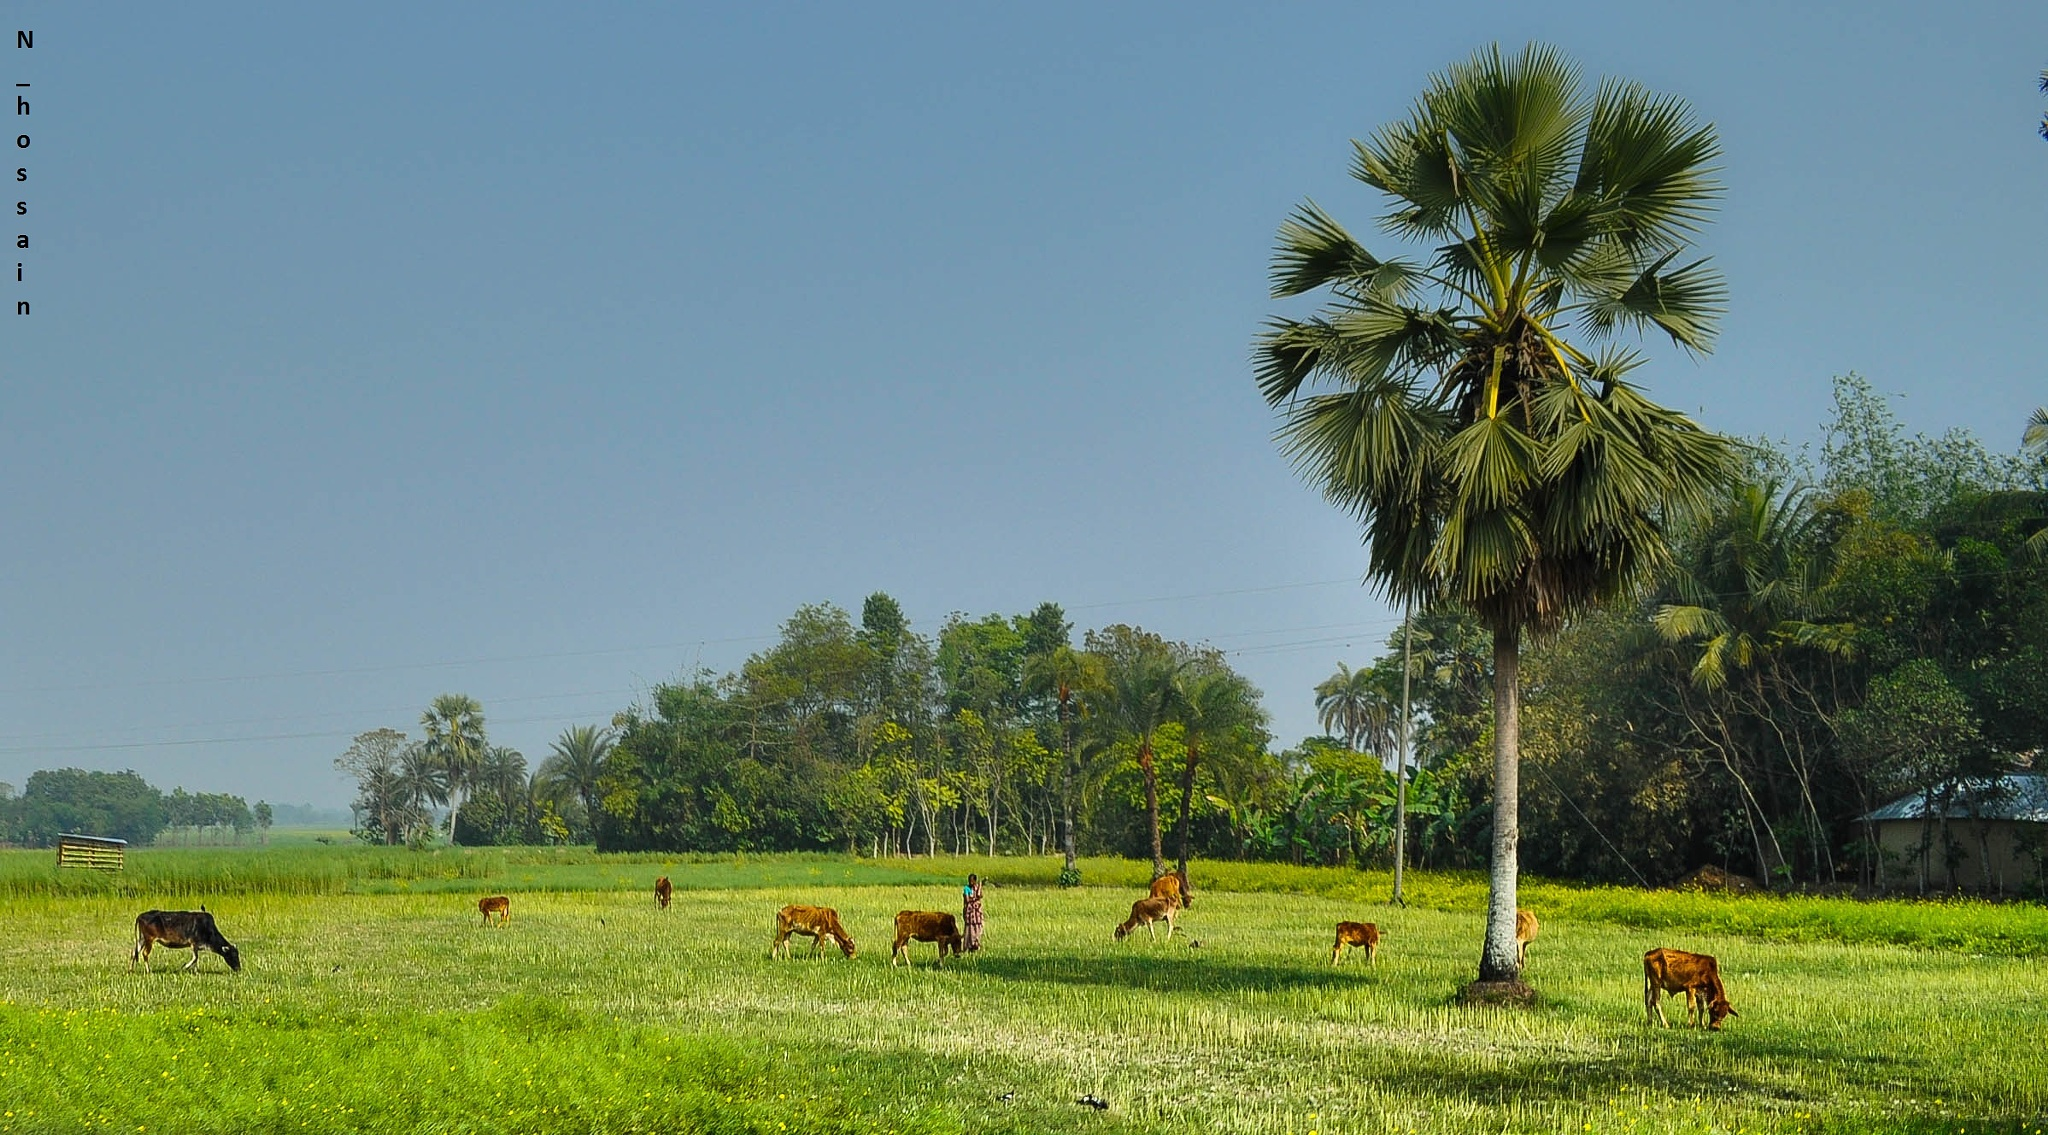 Life and Nature by Nazmul Hossain